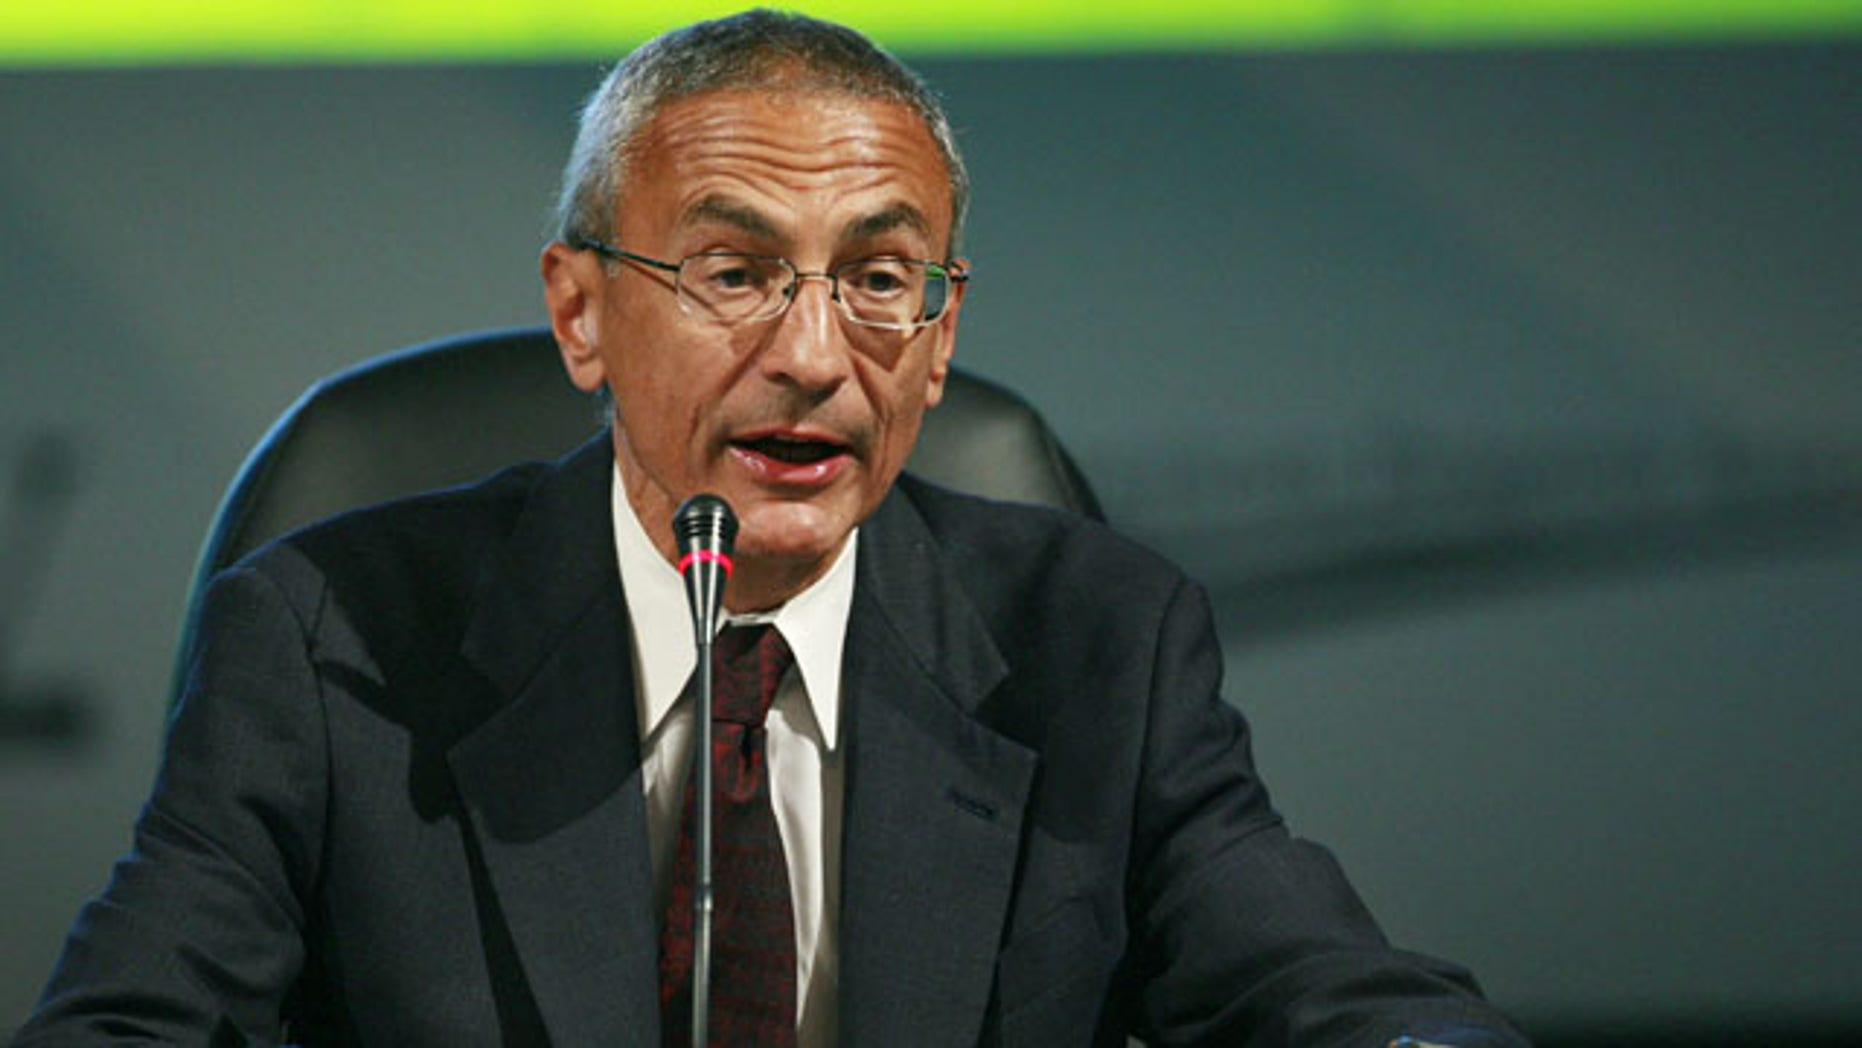 FILE - In this Monday, Aug. 10, 2009, file photo, Center for American Progress Action Fund President & CEO John Podesta speaks at the National Clean Energy Summit 2.0, at The Cox Pavillion in Las Vegas. (AP Photo)